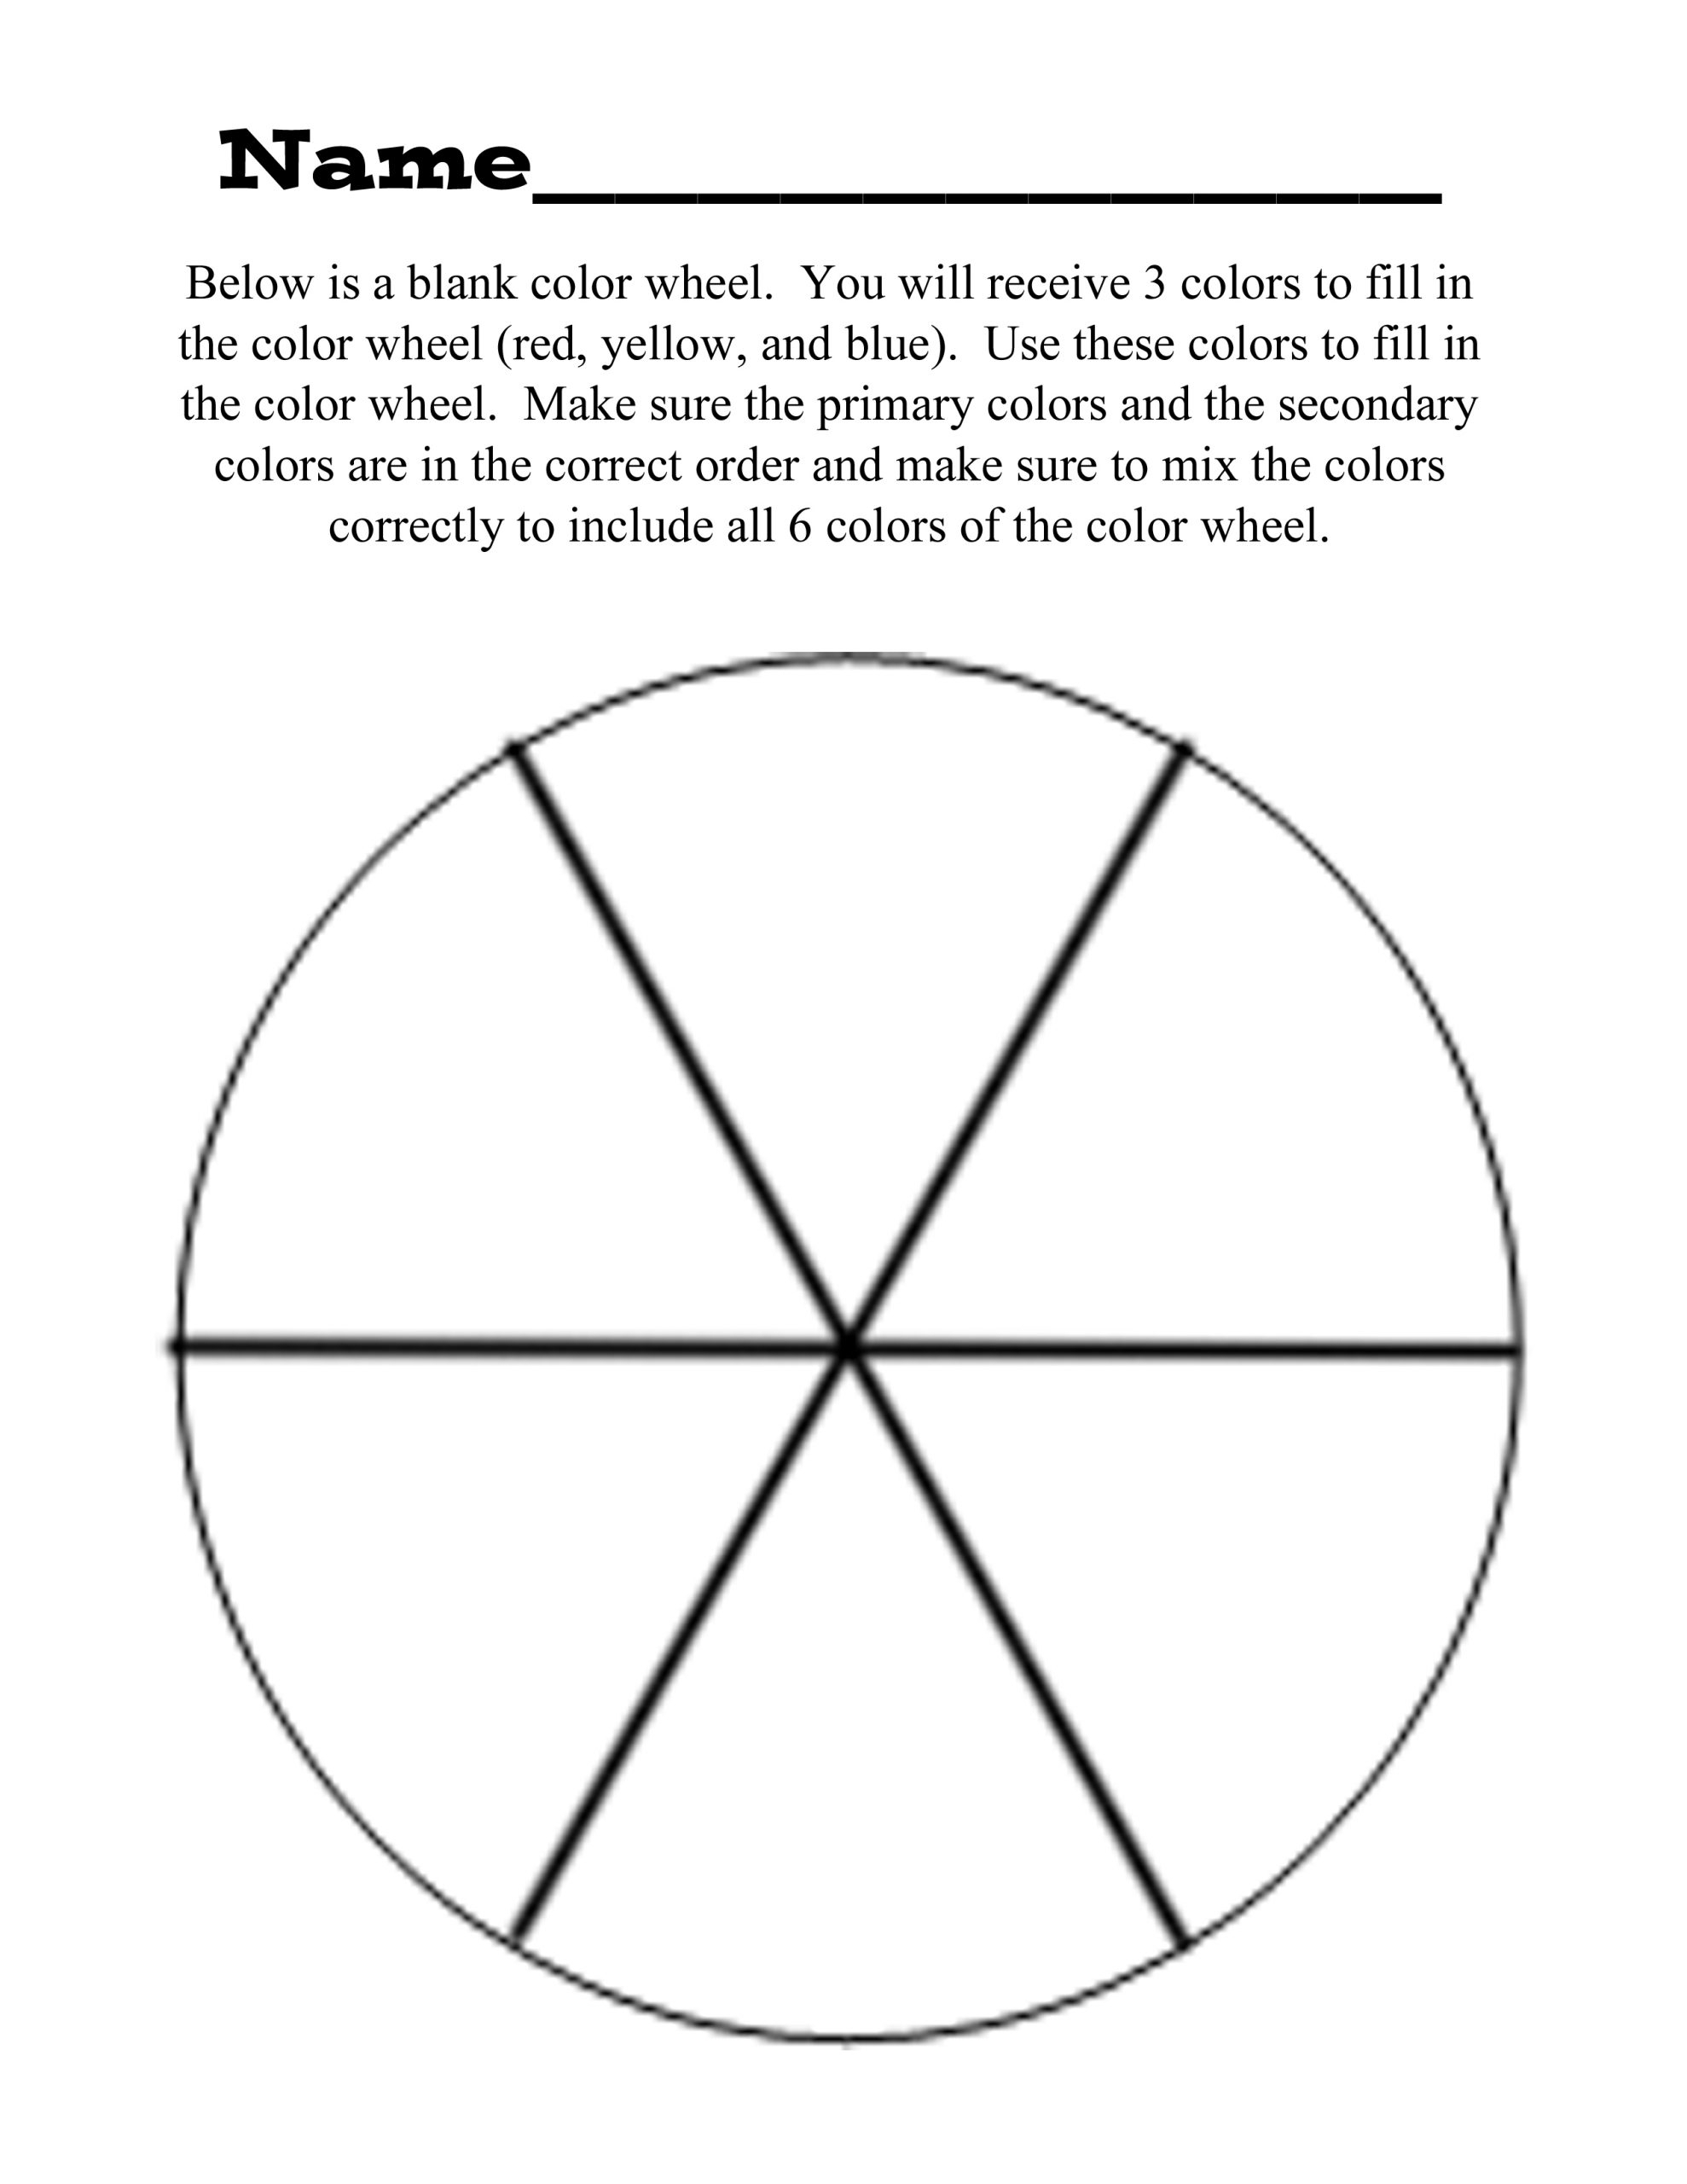 coloring wheel worksheet clip art color theory worksheets blank wheel coloring worksheet coloring wheel